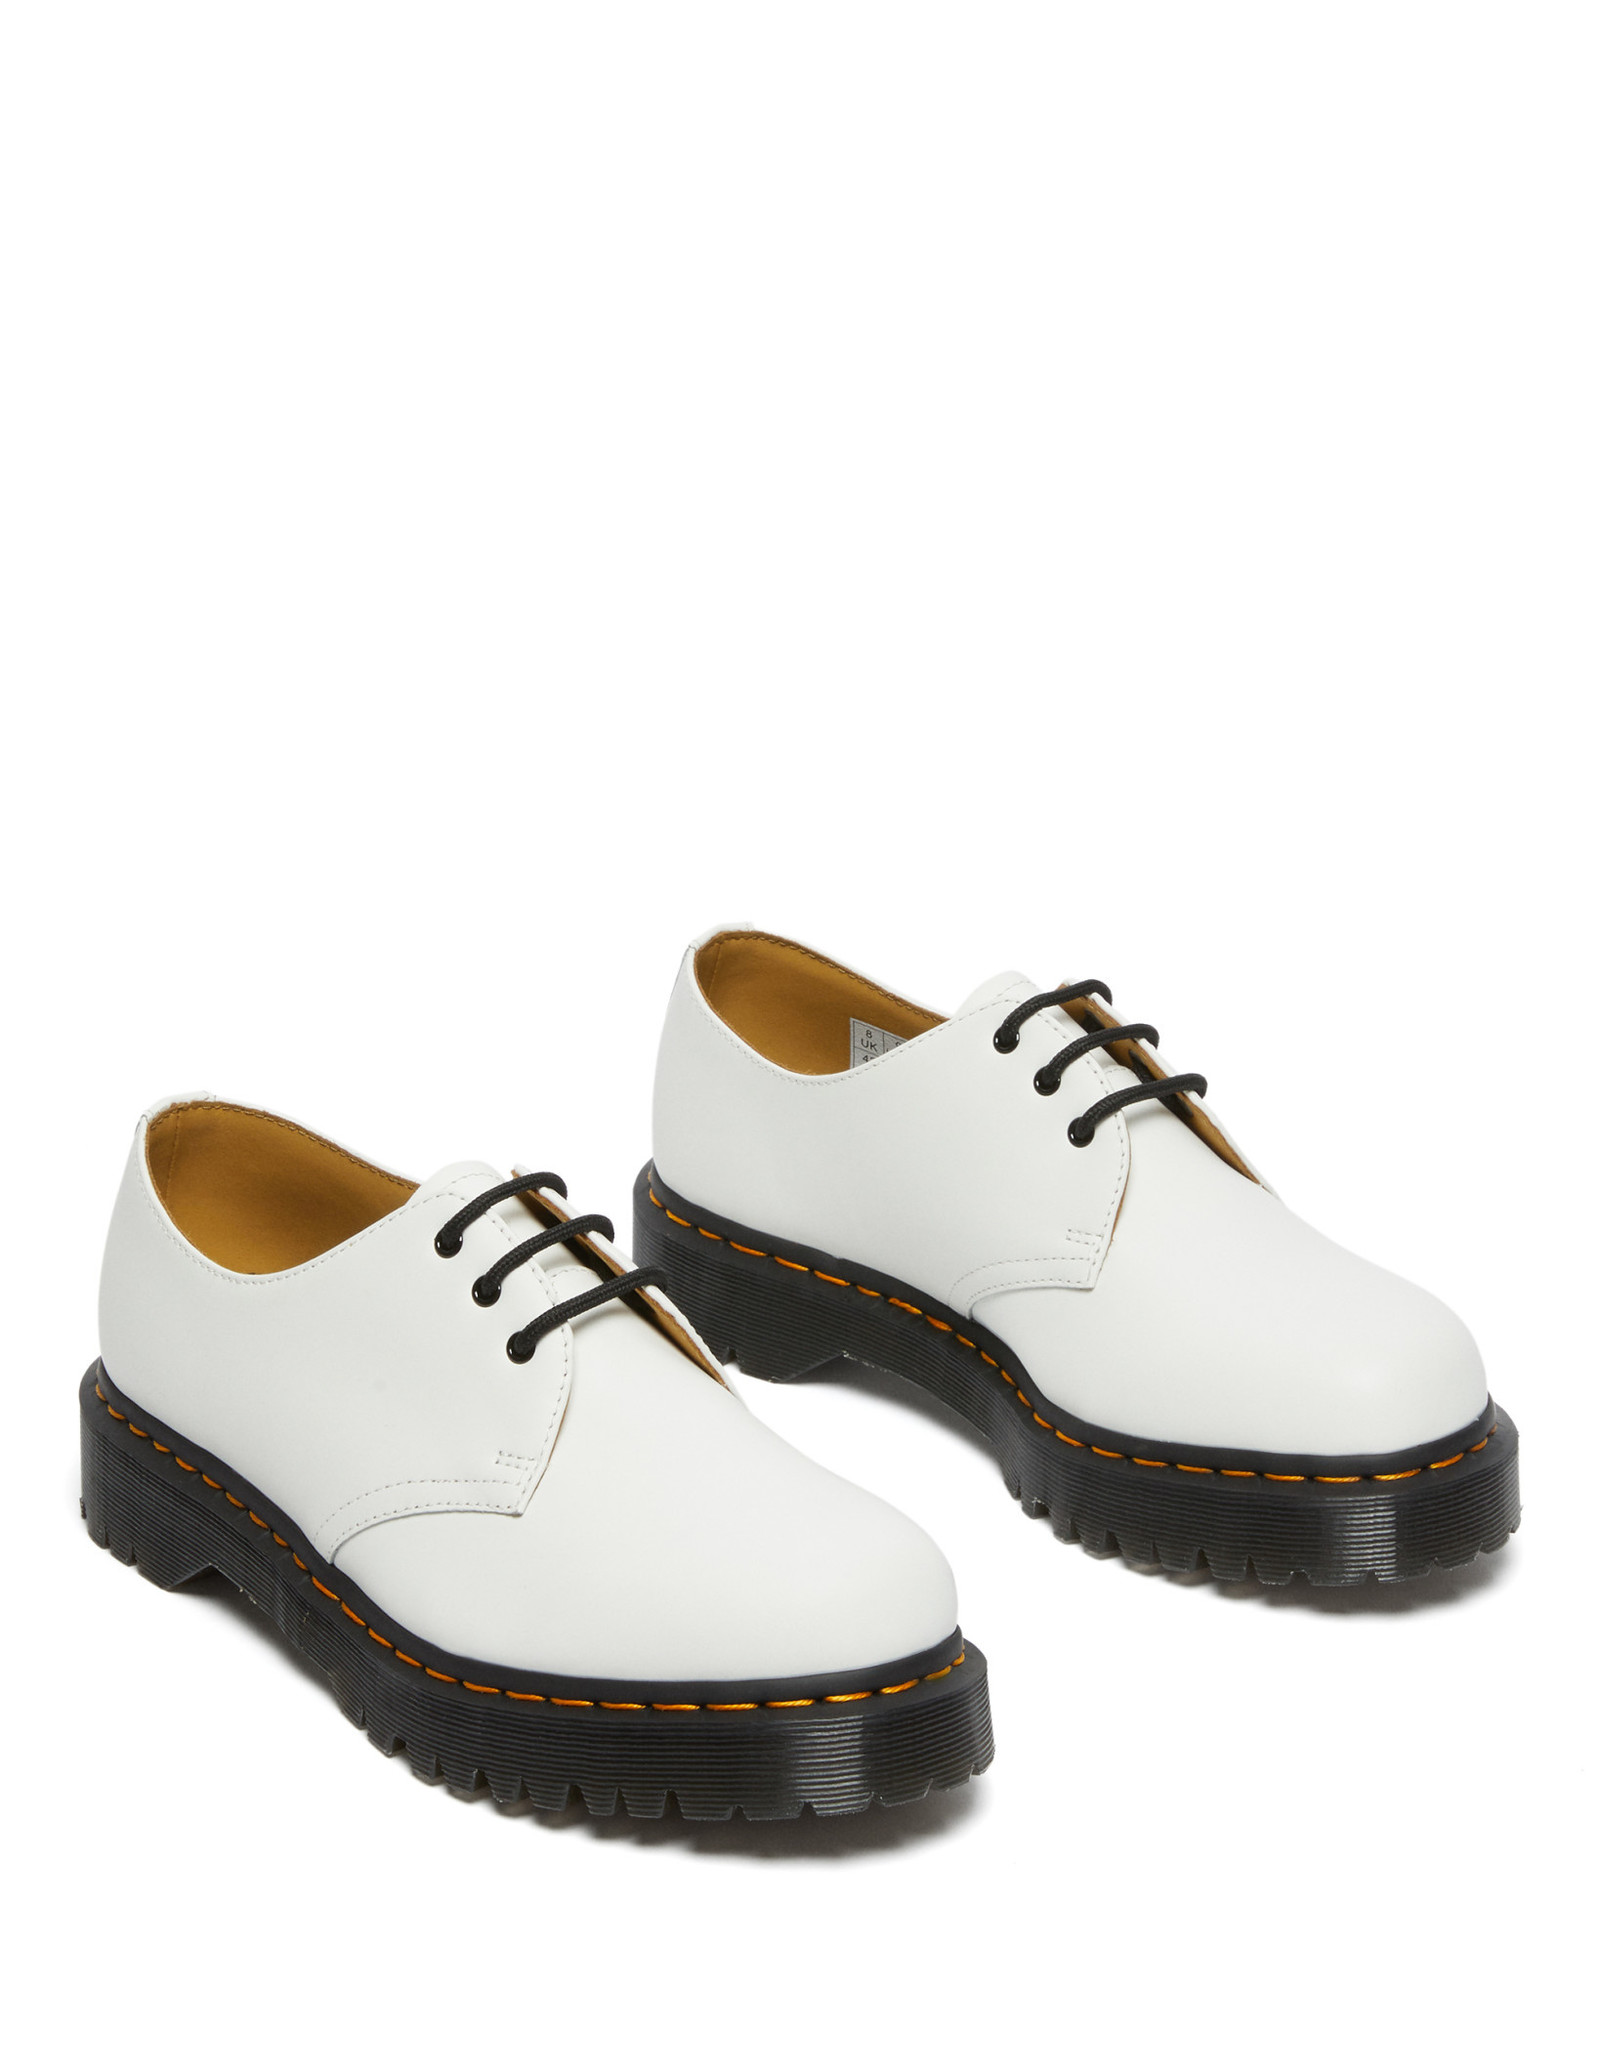 DR. MARTENS 1461 BEX WHITE SMOOTH 301WBEX-R26654100